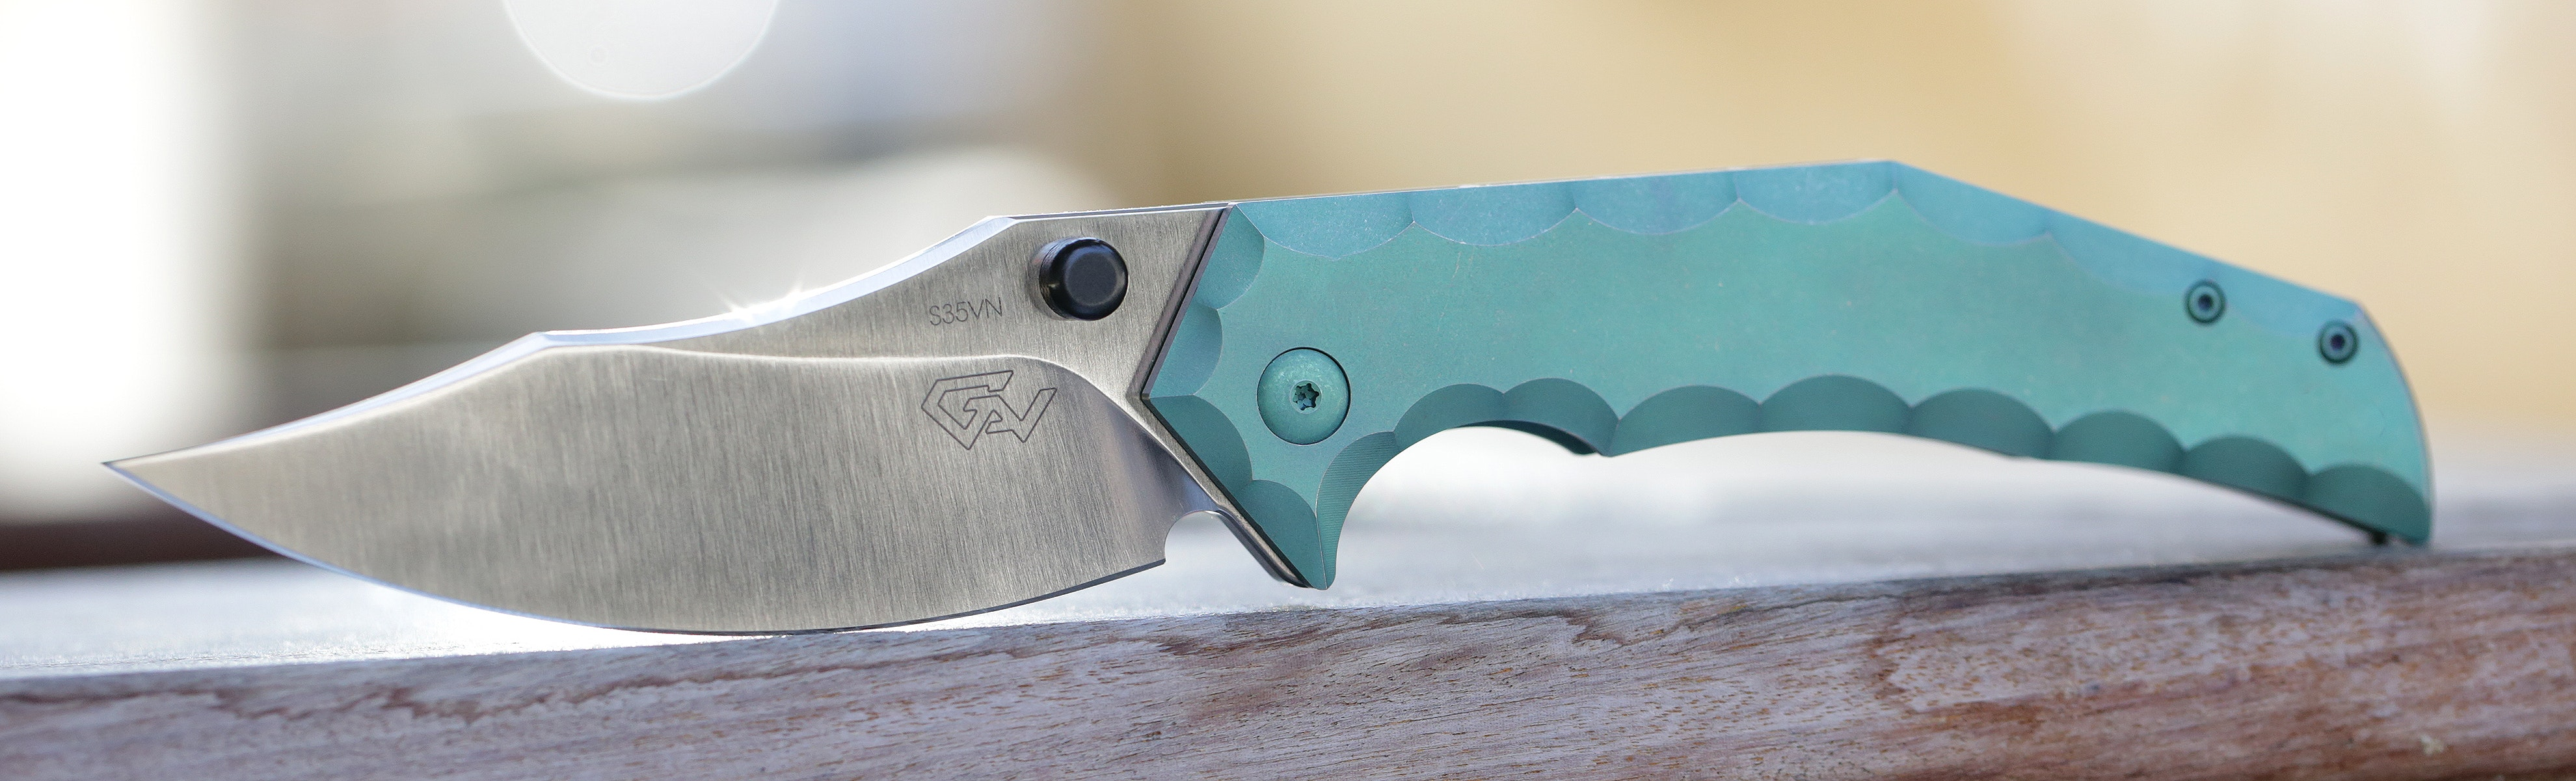 Massdrop x Gavko Thresher Titanium Frame Lock Knife